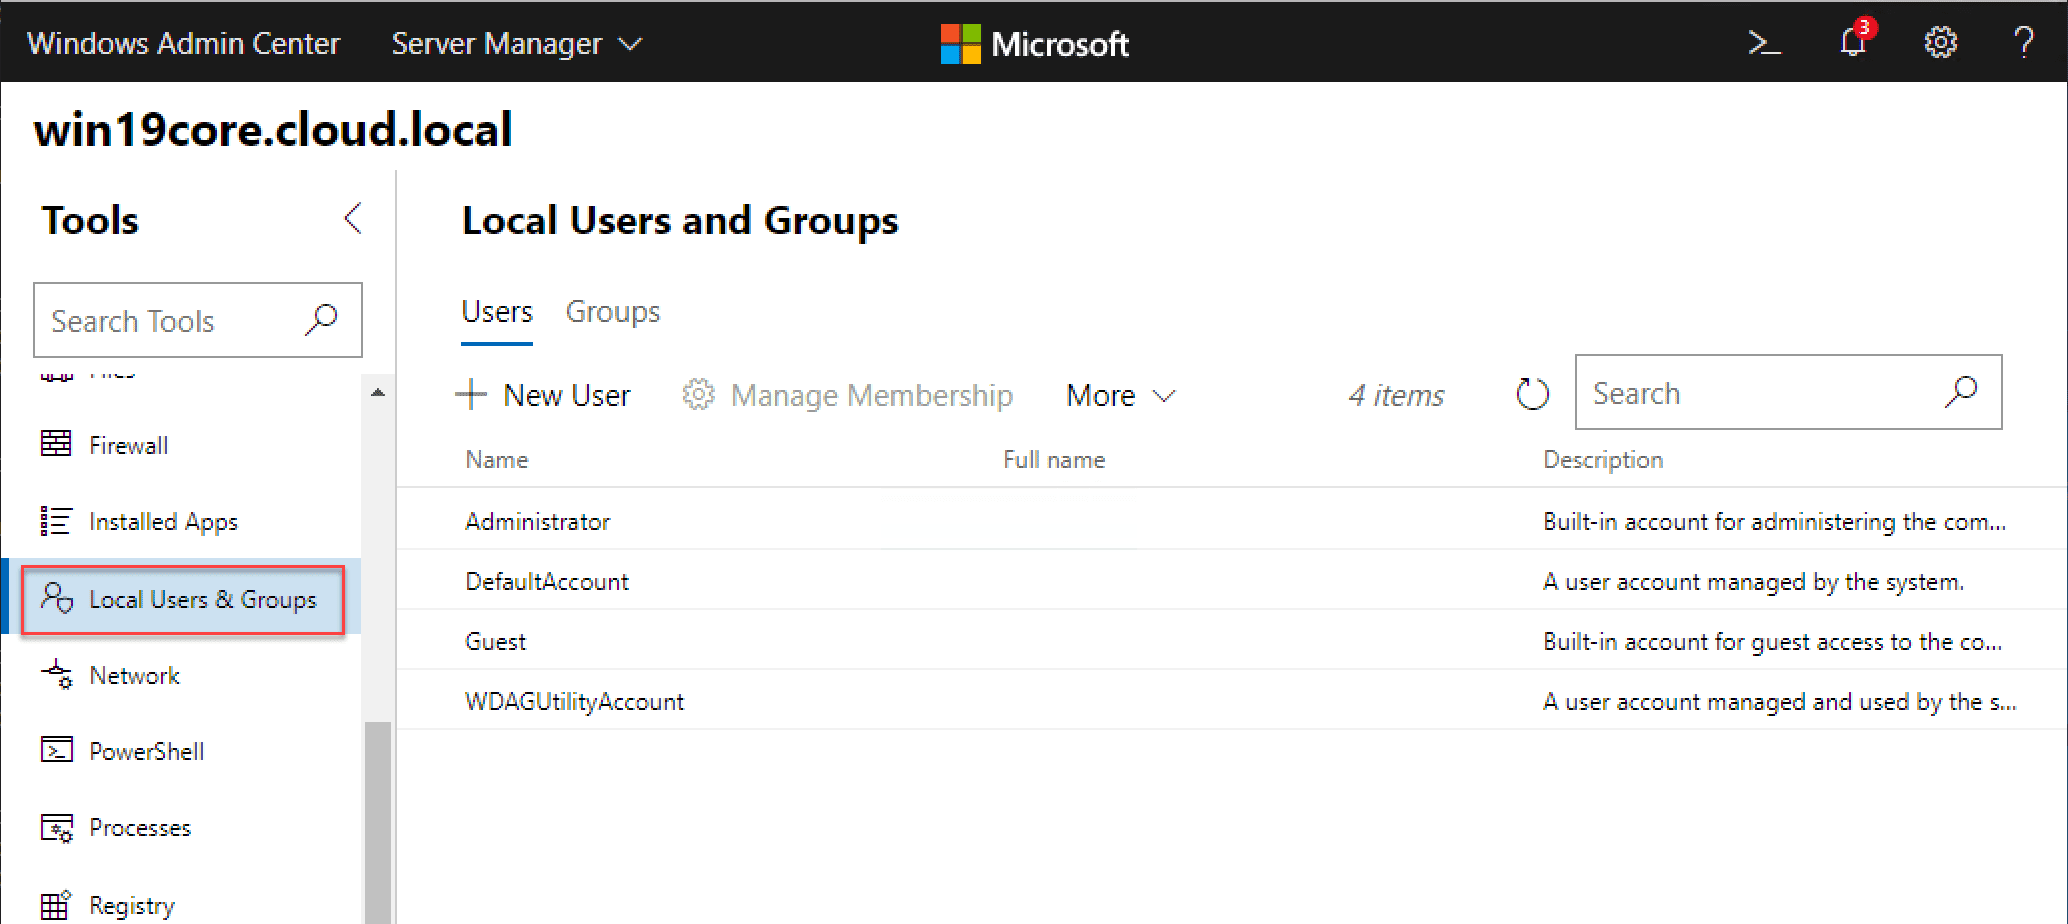 Managing-Local-Users-and-Groups-with-Windows-Admin-Center